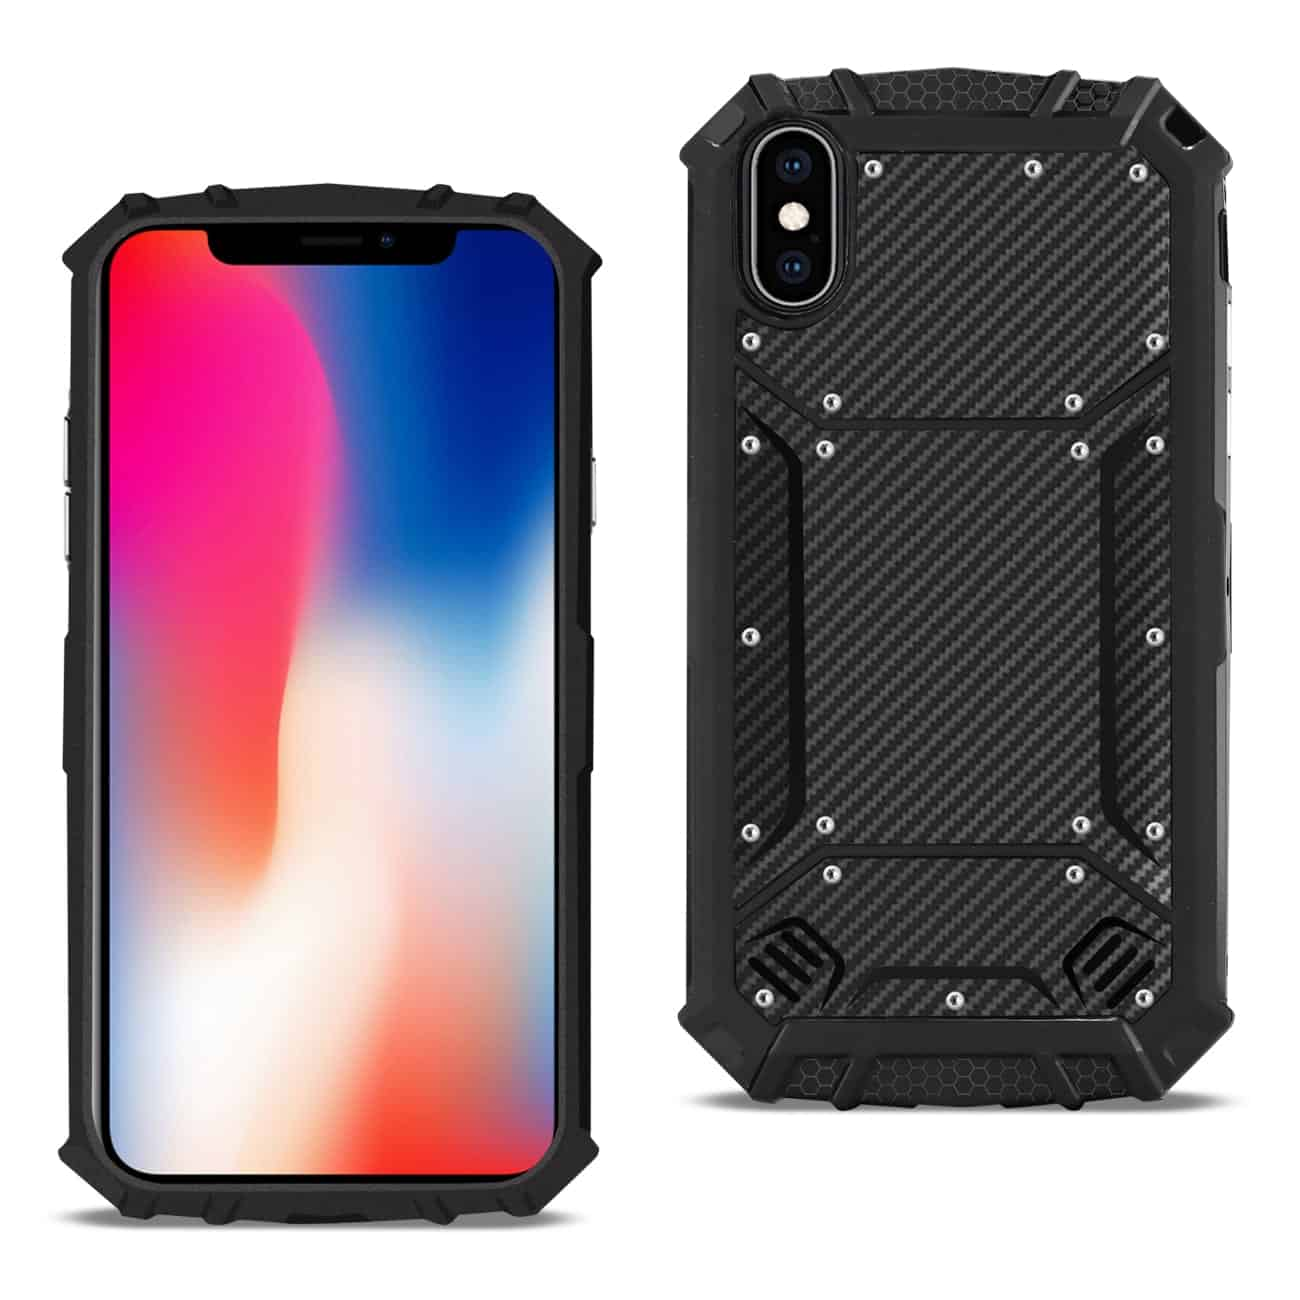 APPLE IPHONE X Carbon Fiber Hard-shell Case In Black